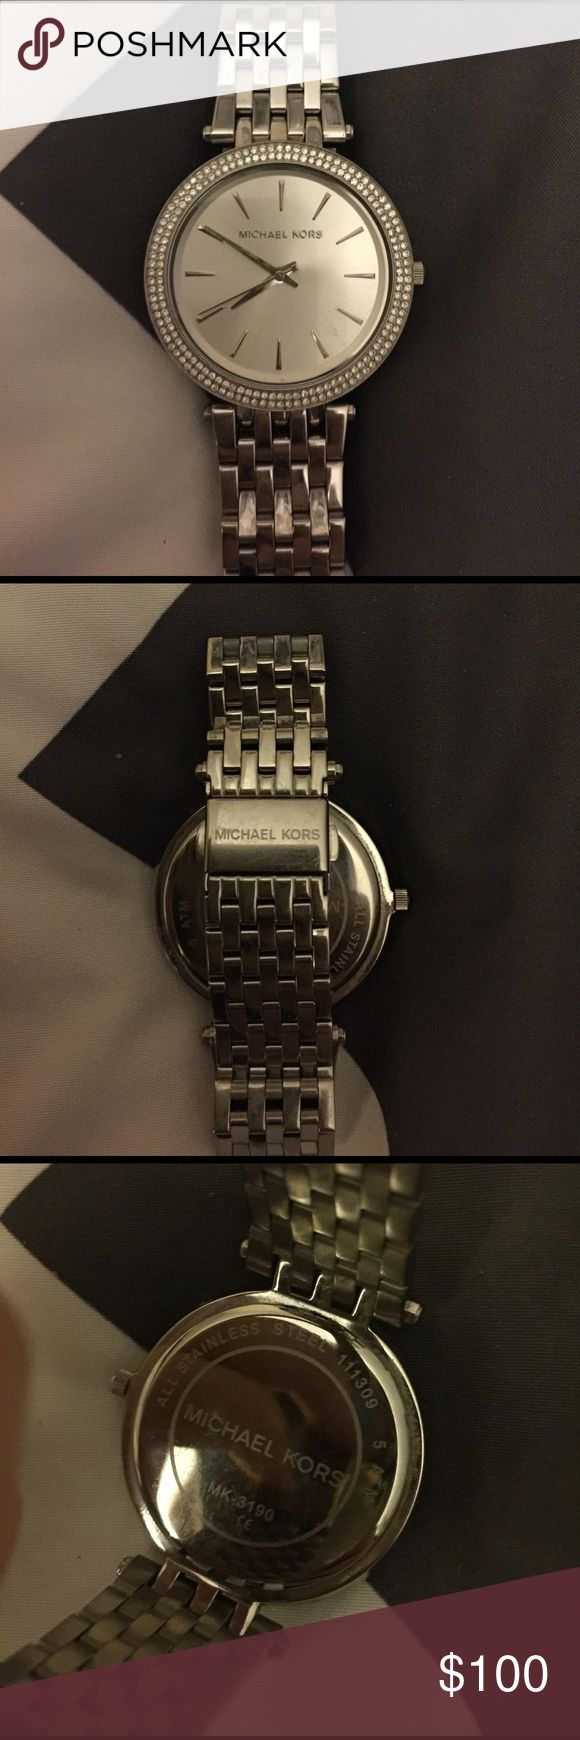 Michael Kors Silver Watch! Very Stylish Authentic Michael Kors Silver Watch! This was my go to watch for awhile but since I got the Apple Watch It just sits on my jewelry rack. Excellent condition! Beautiful classic design goes with just about anything! KORS Michael Kors Accessories Watches